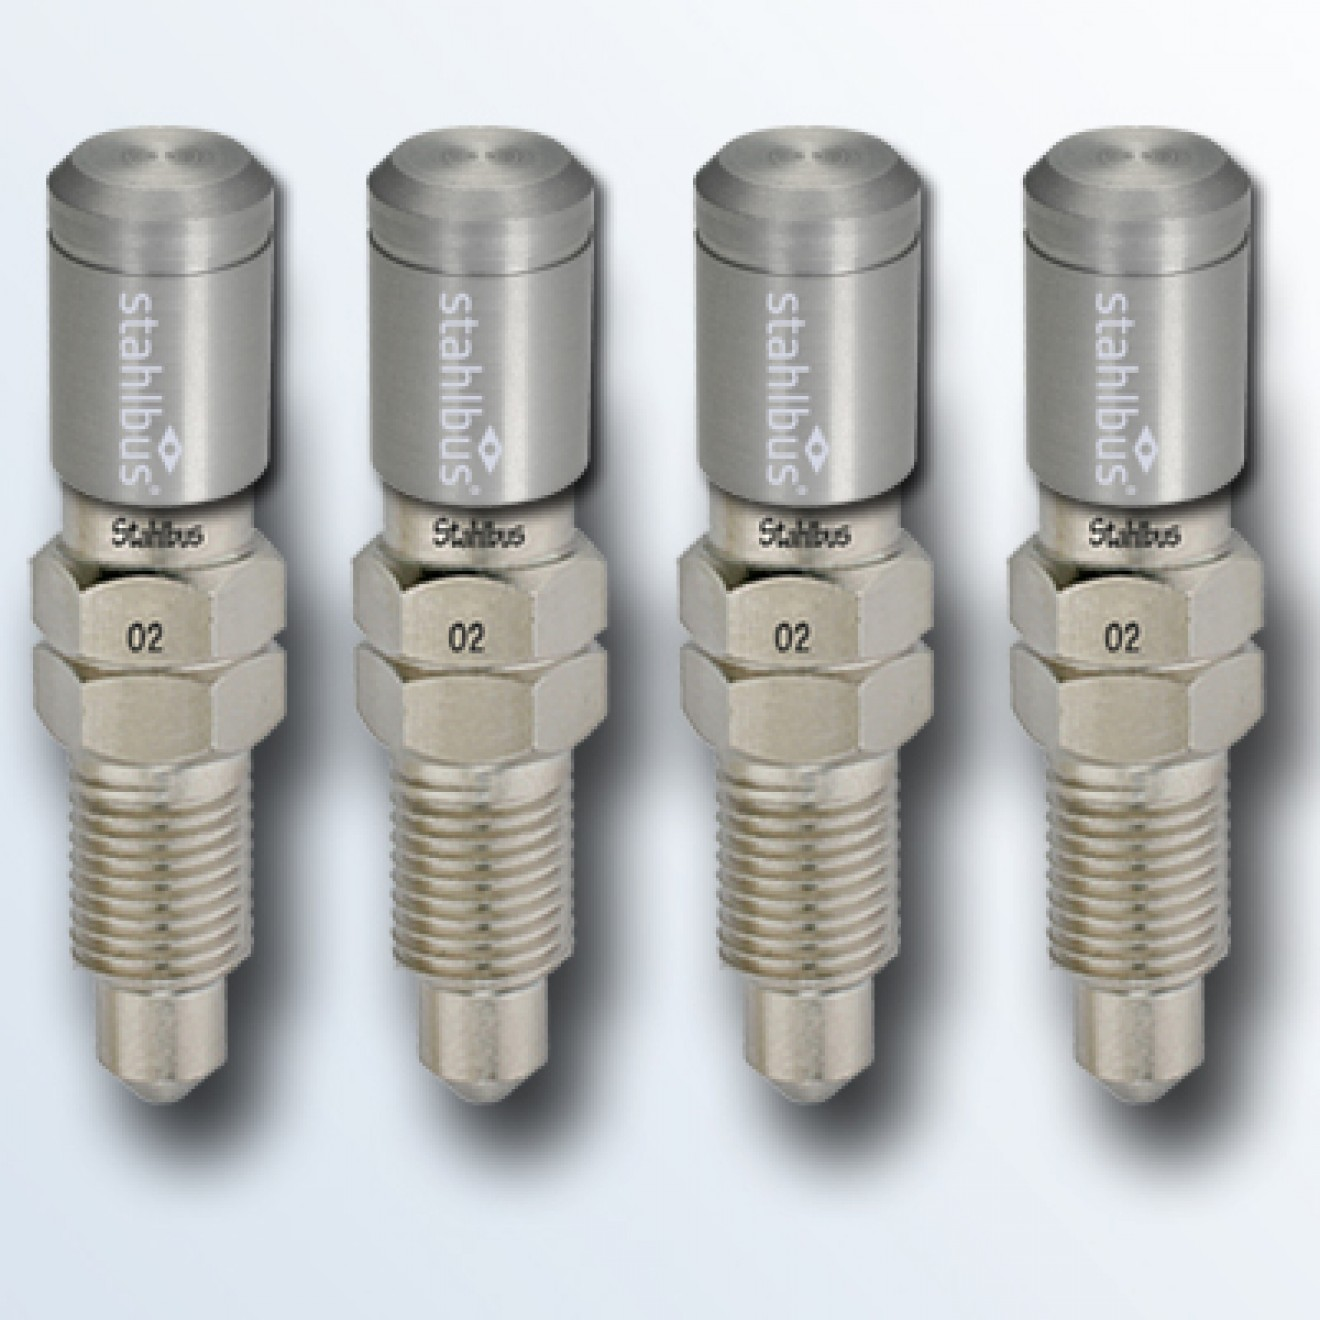 4-piece set stahlbus Bleeder valve 5/16 inches-24UNFx16mm, steel with natural dust cap